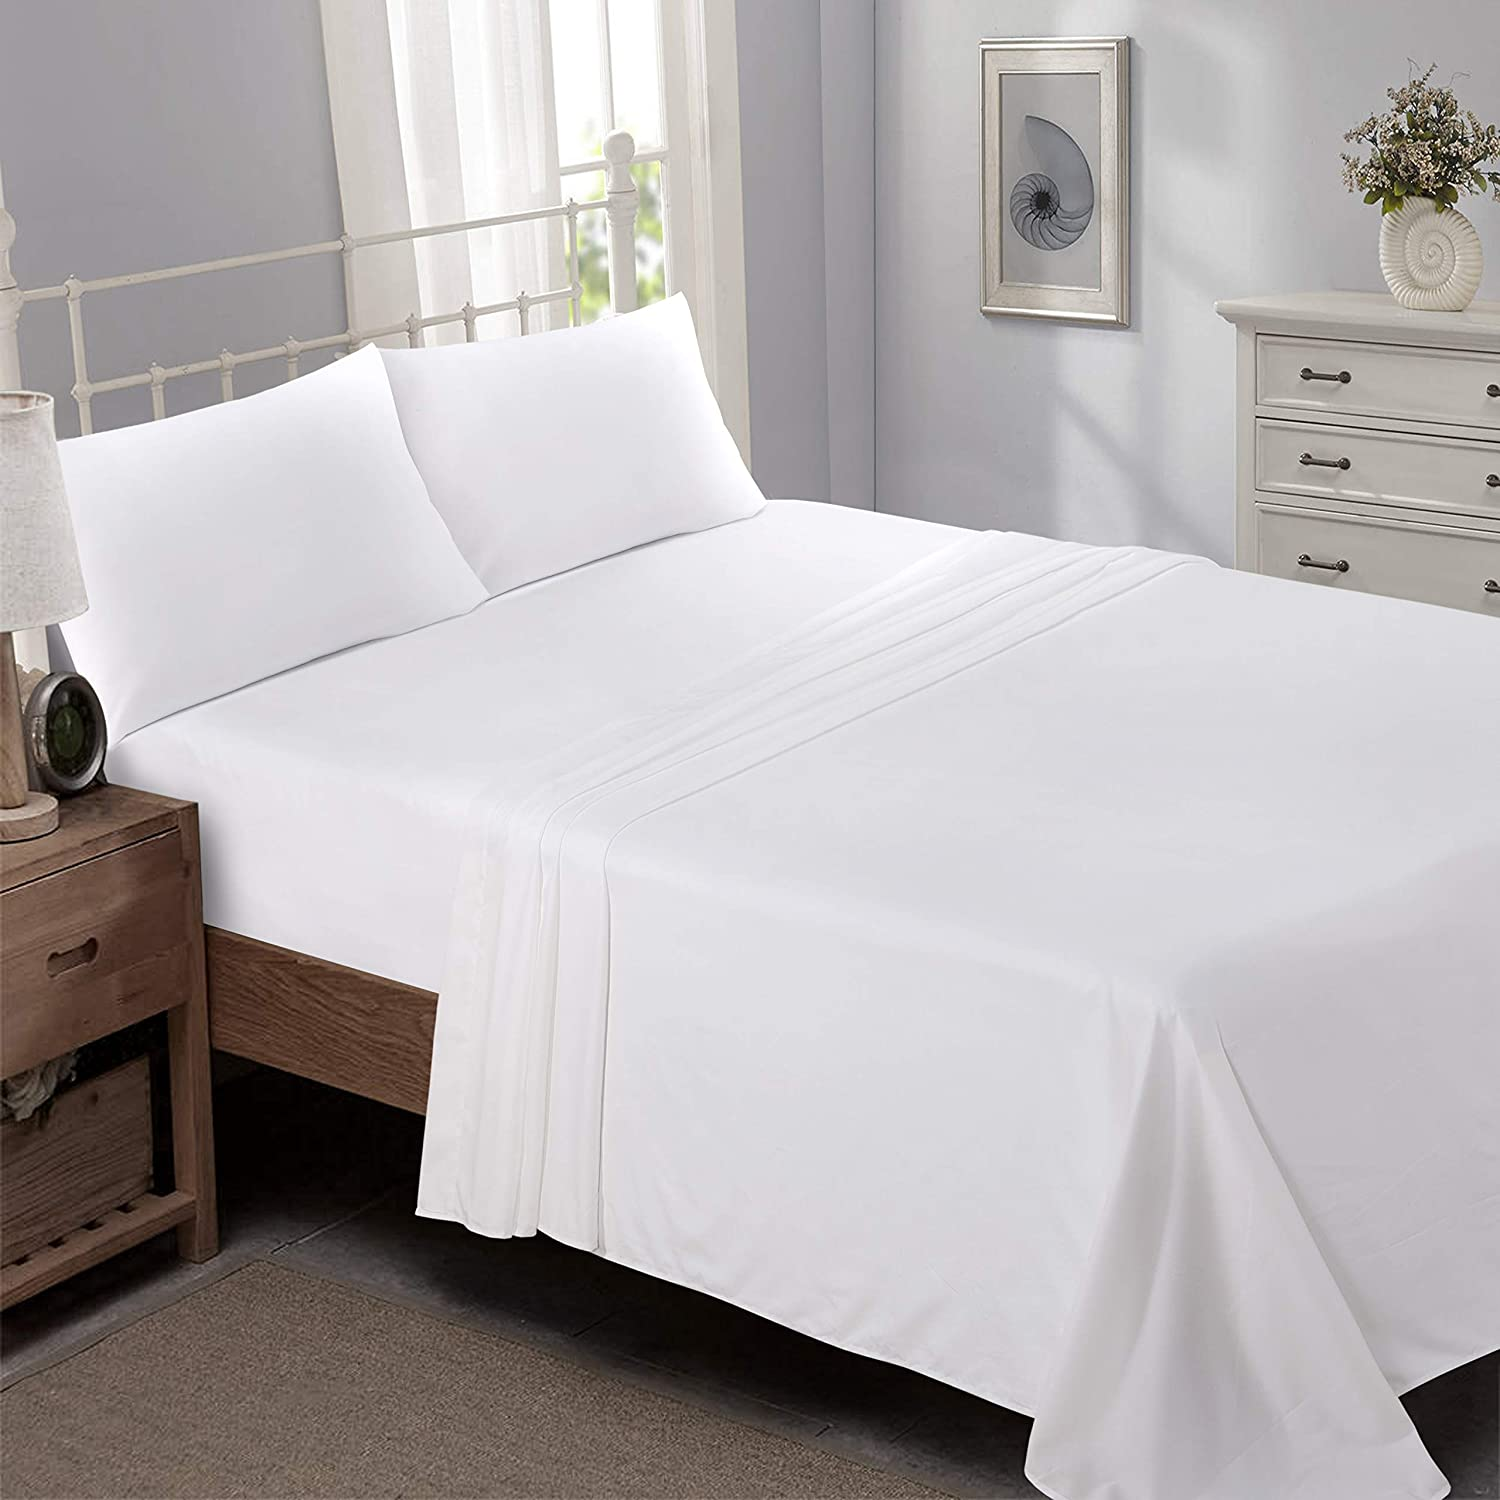 Niagara Sleep Solution Queen Bed Sheet Set White Brushed Microfiber Extreme Soft 1800 Series 4 Pieces Set Fitted, Flat, 2 Pillow Cases Wrinkle Stain, Fade Resistant